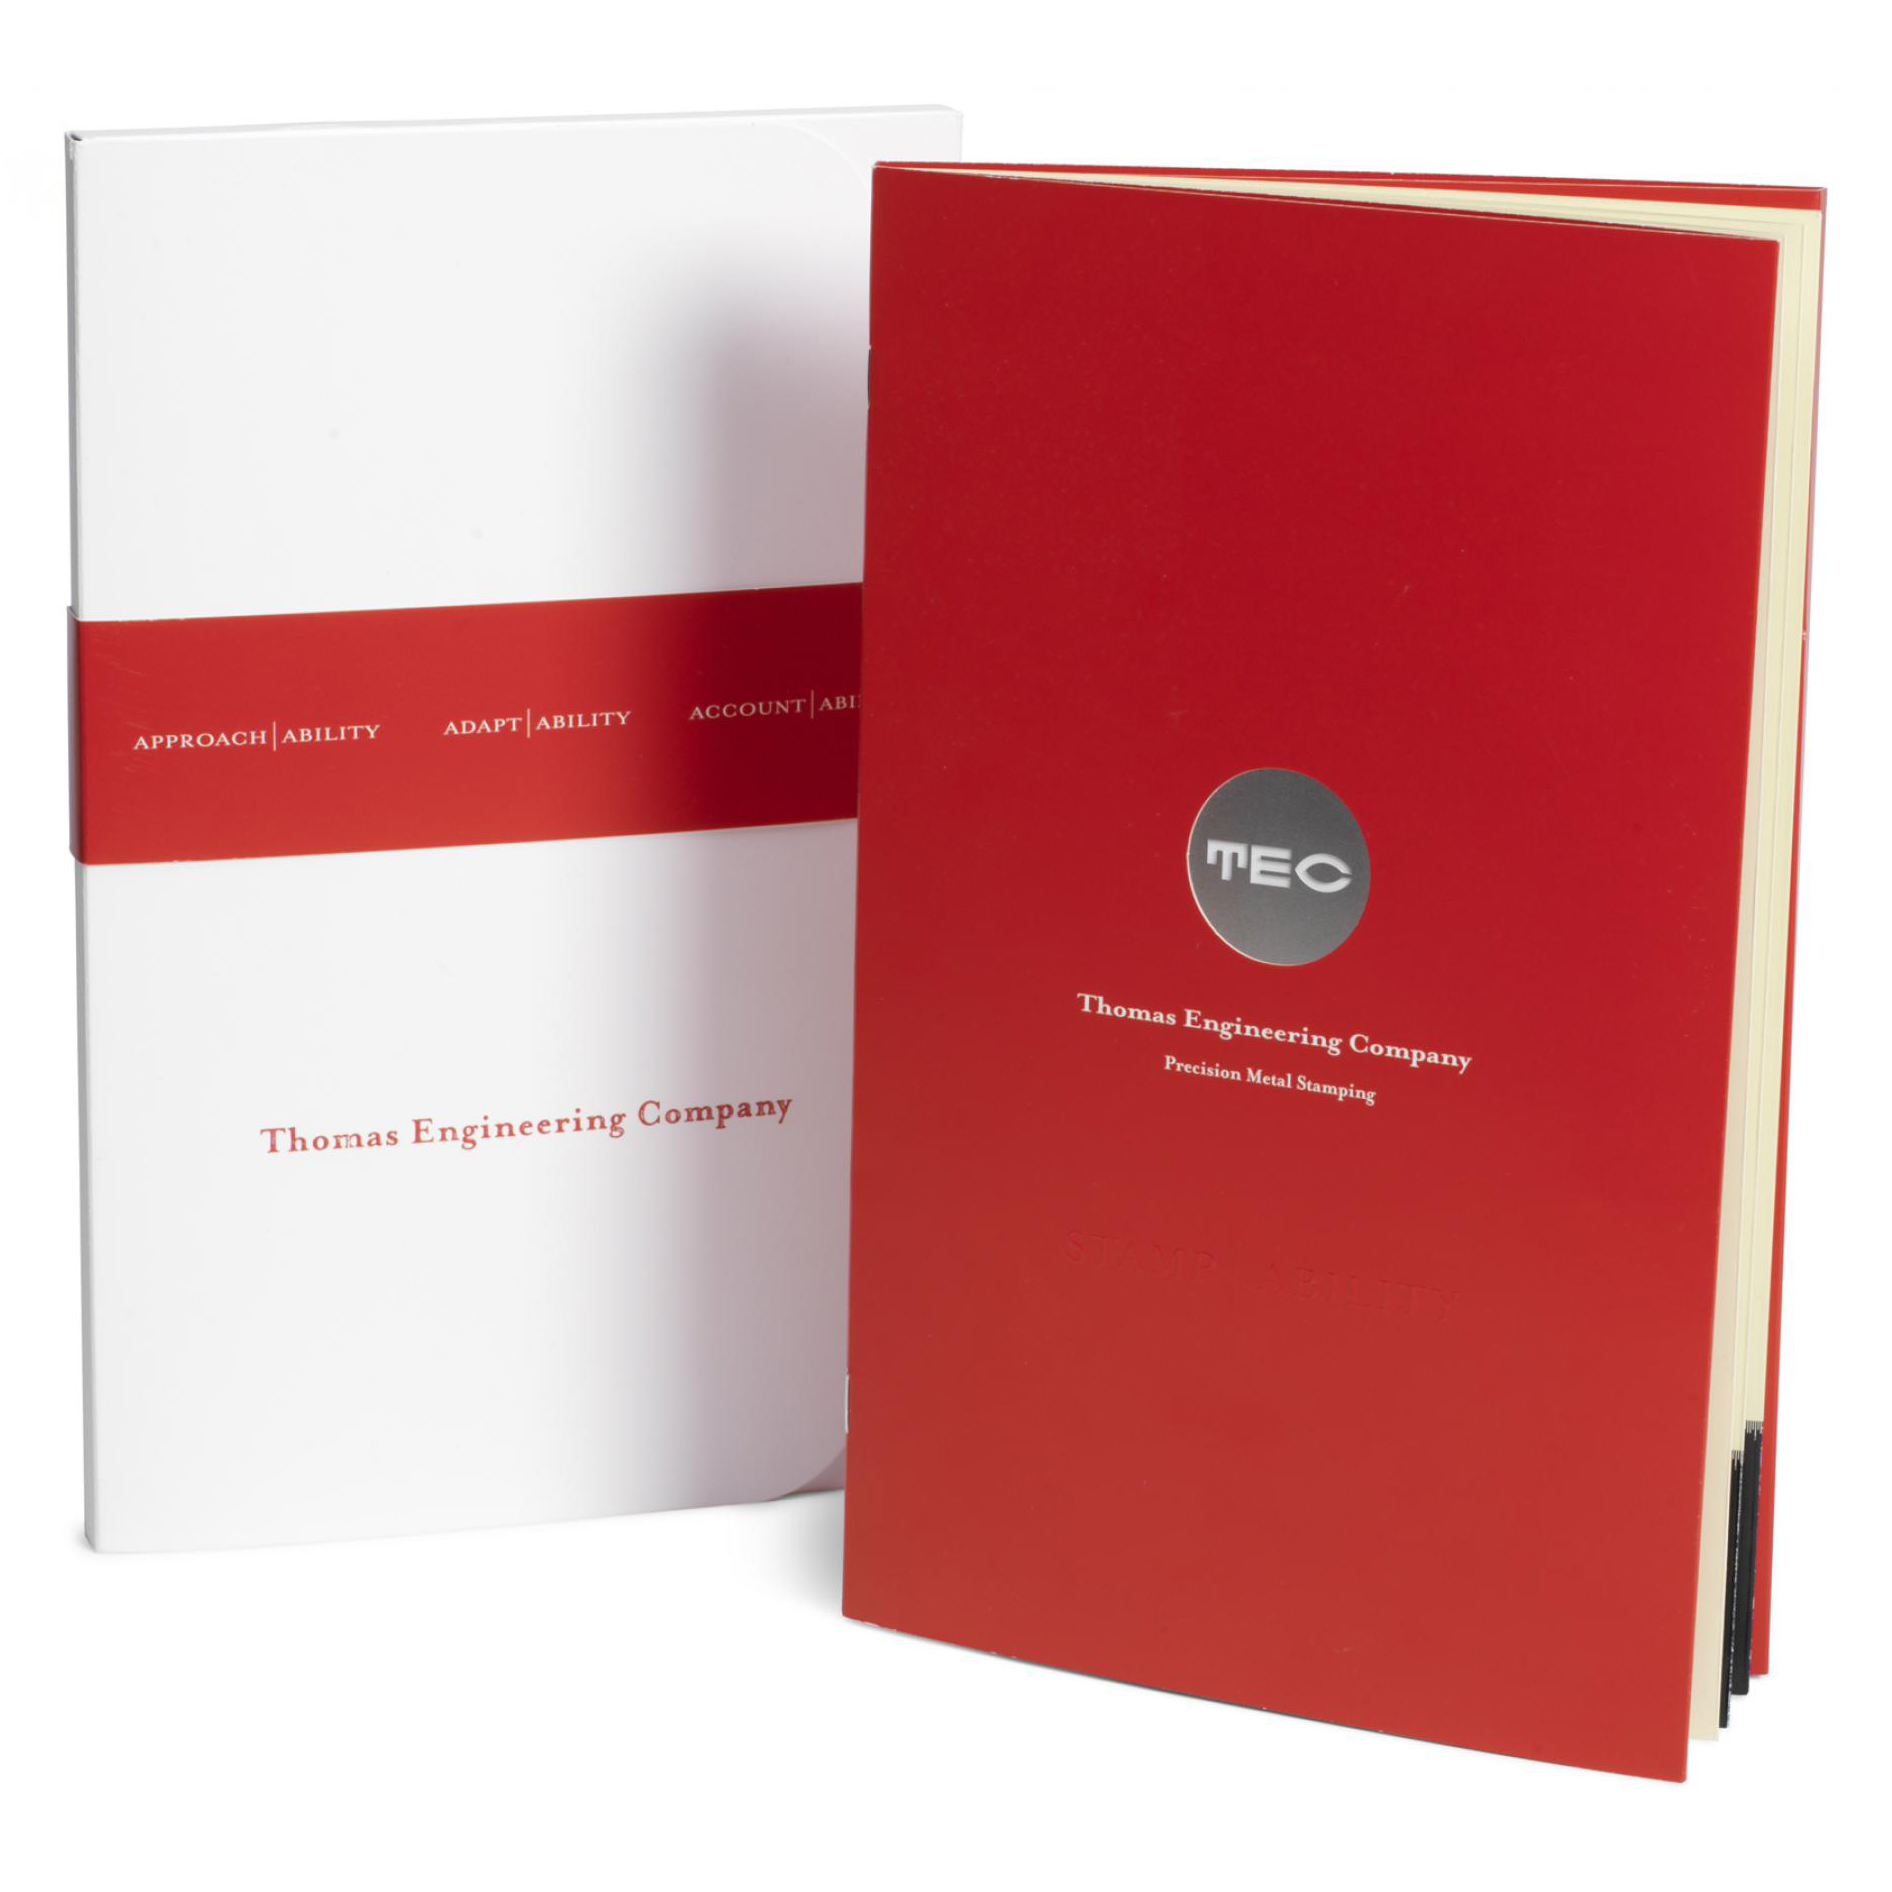 Cover and custom size folder for award-winning Thomas Engineering Company marketing piece.